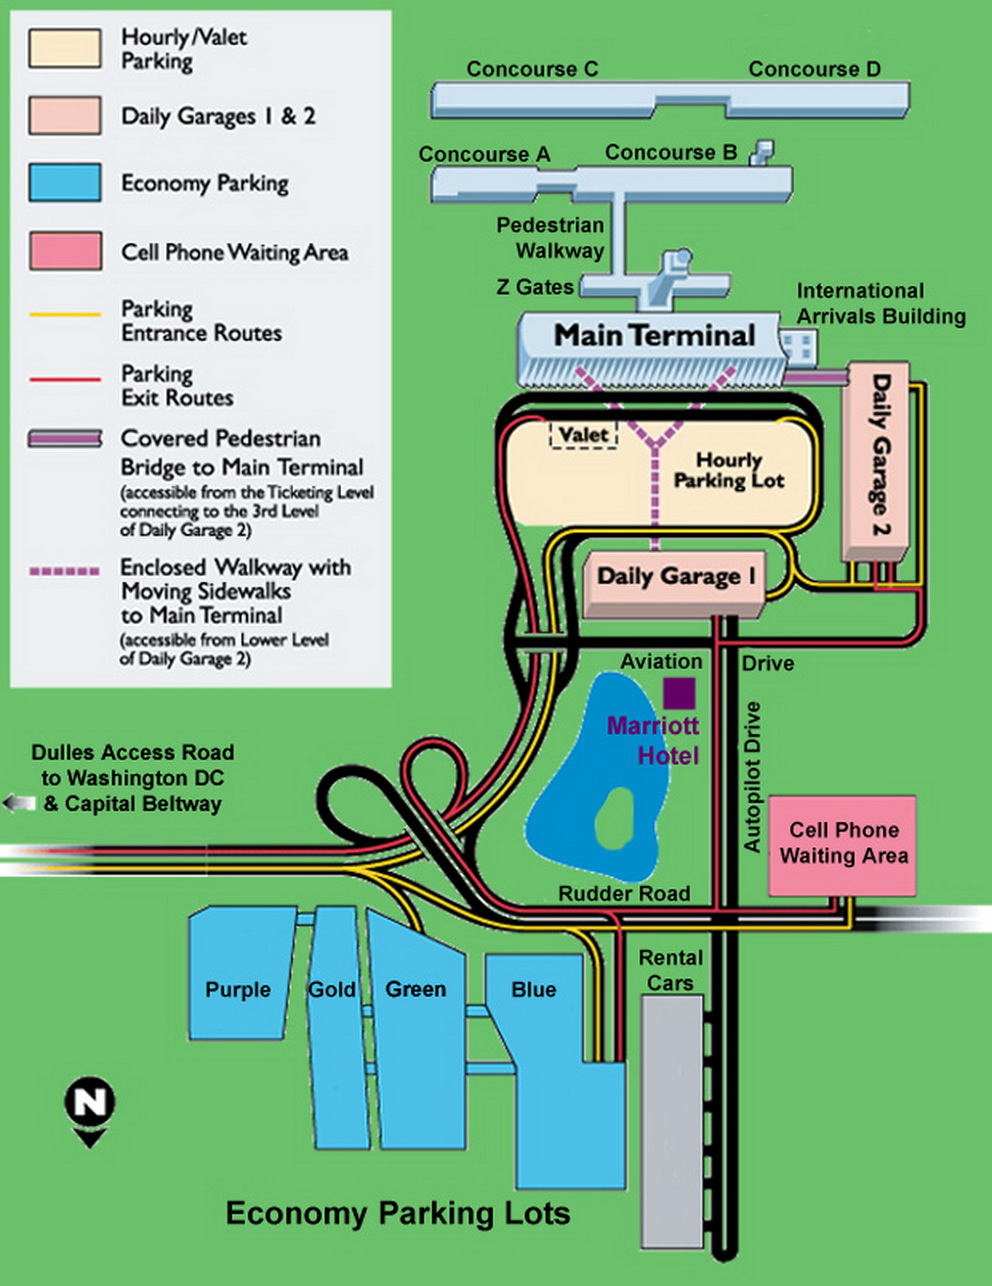 Airport Parking Map - dulles-airport-parking-map.jpg on